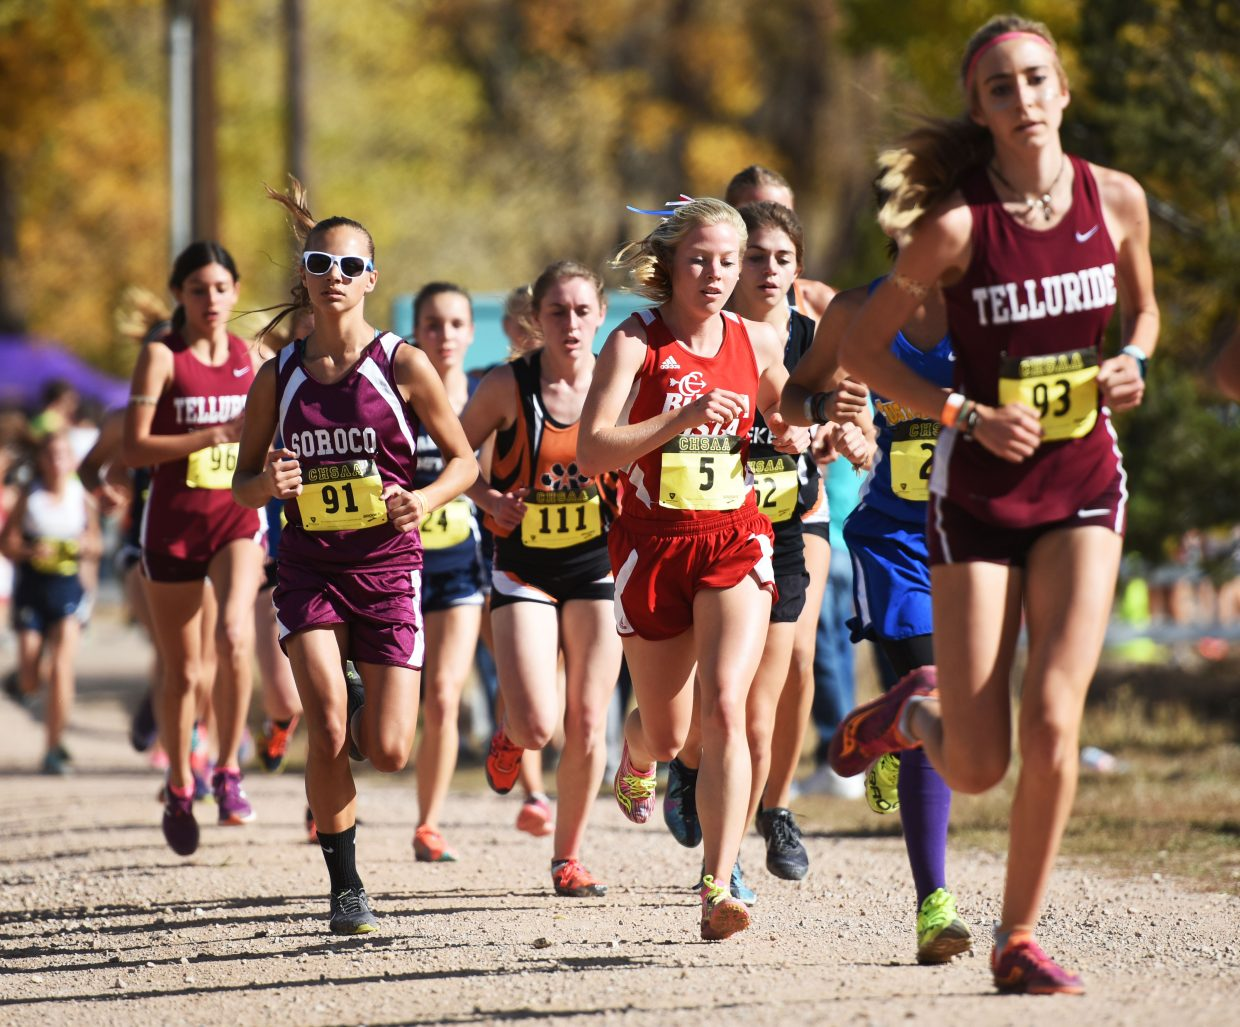 Chloe Veilleux runs with the lead pack Saturday at the Class 2A state cross country meet in Colorado Springs.